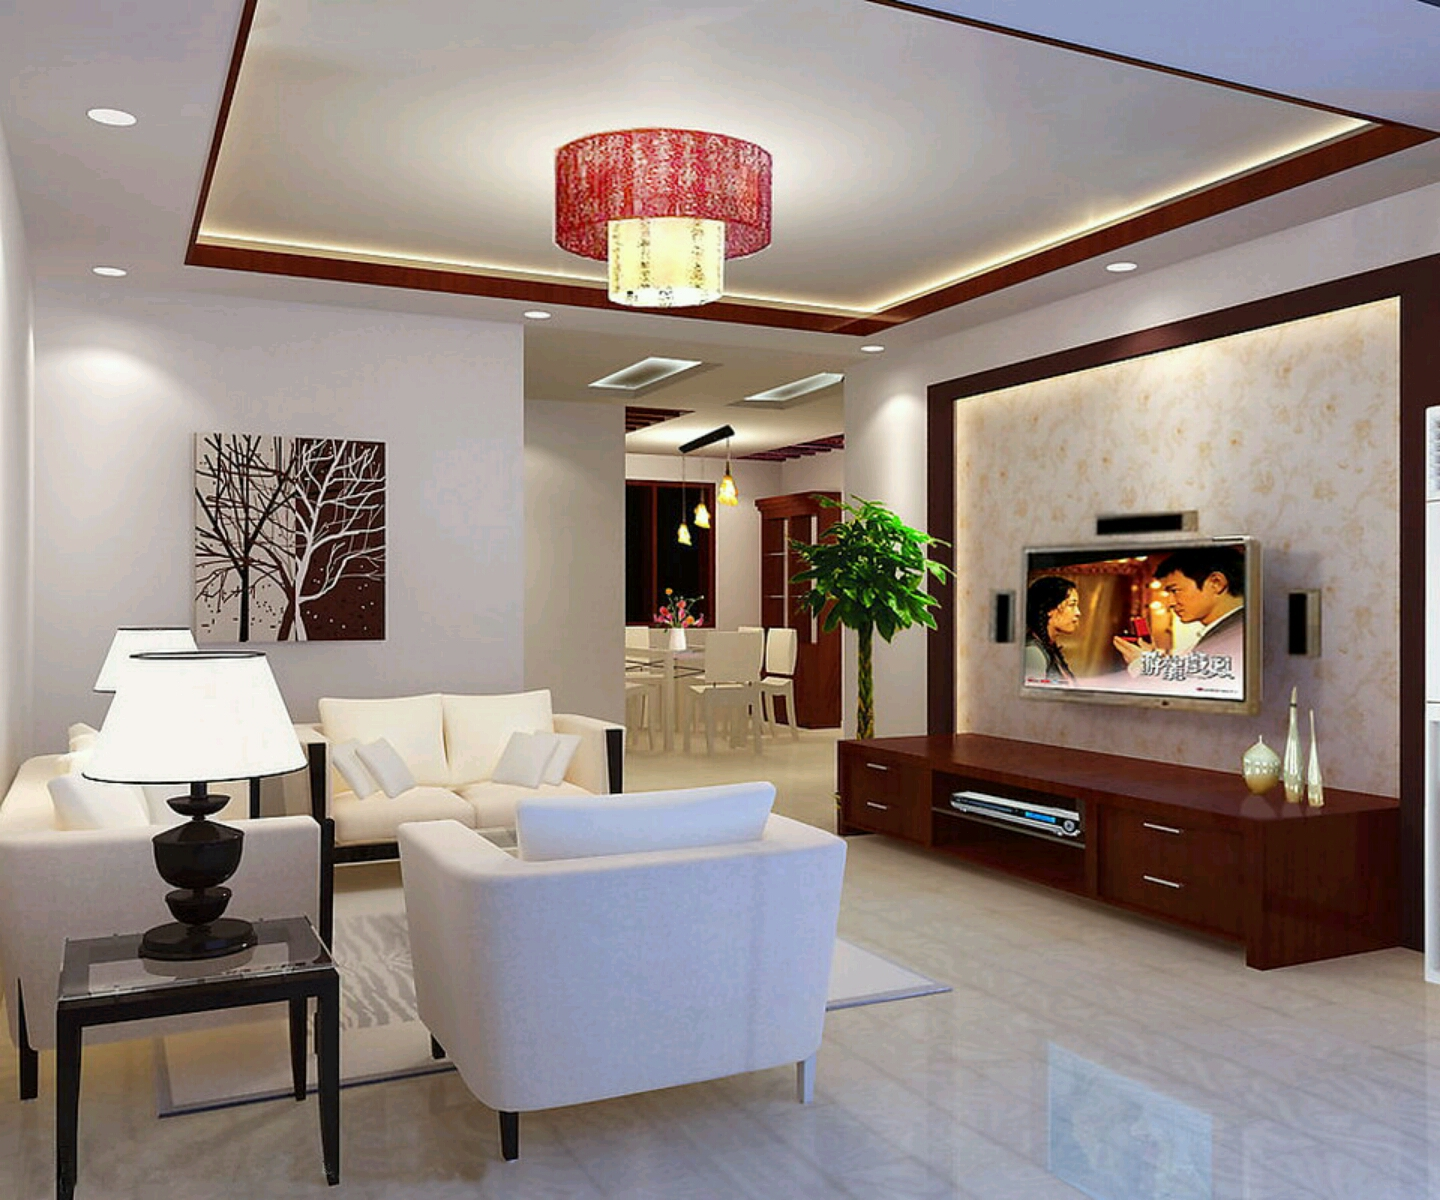 New home designs latest modern interior decoration for Home ceiling design images